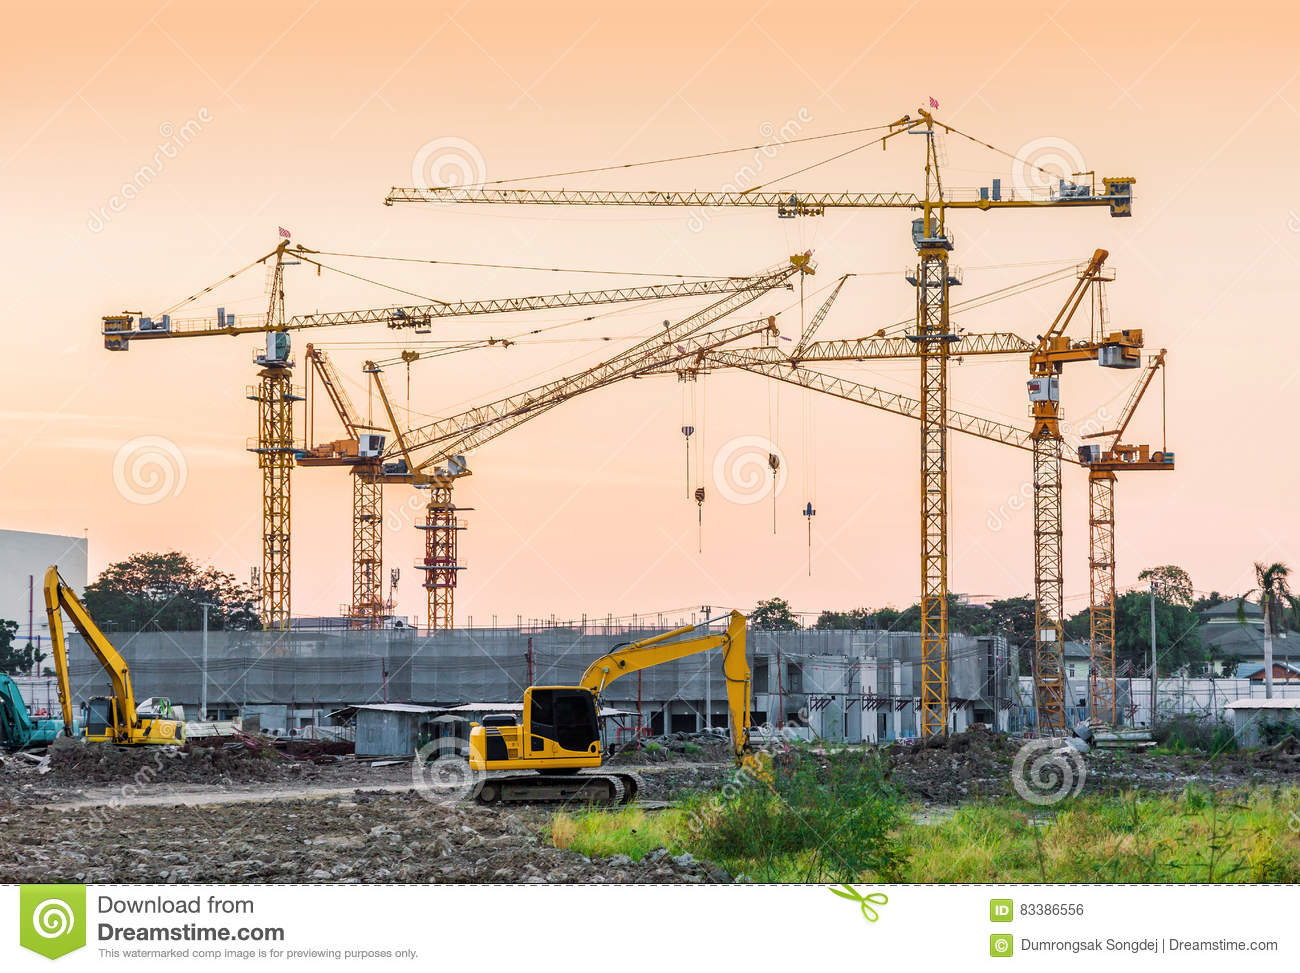 Download Building Construction Site With Tower Crane Machinery Stock Photo - Image of industrial, machine: 83386556